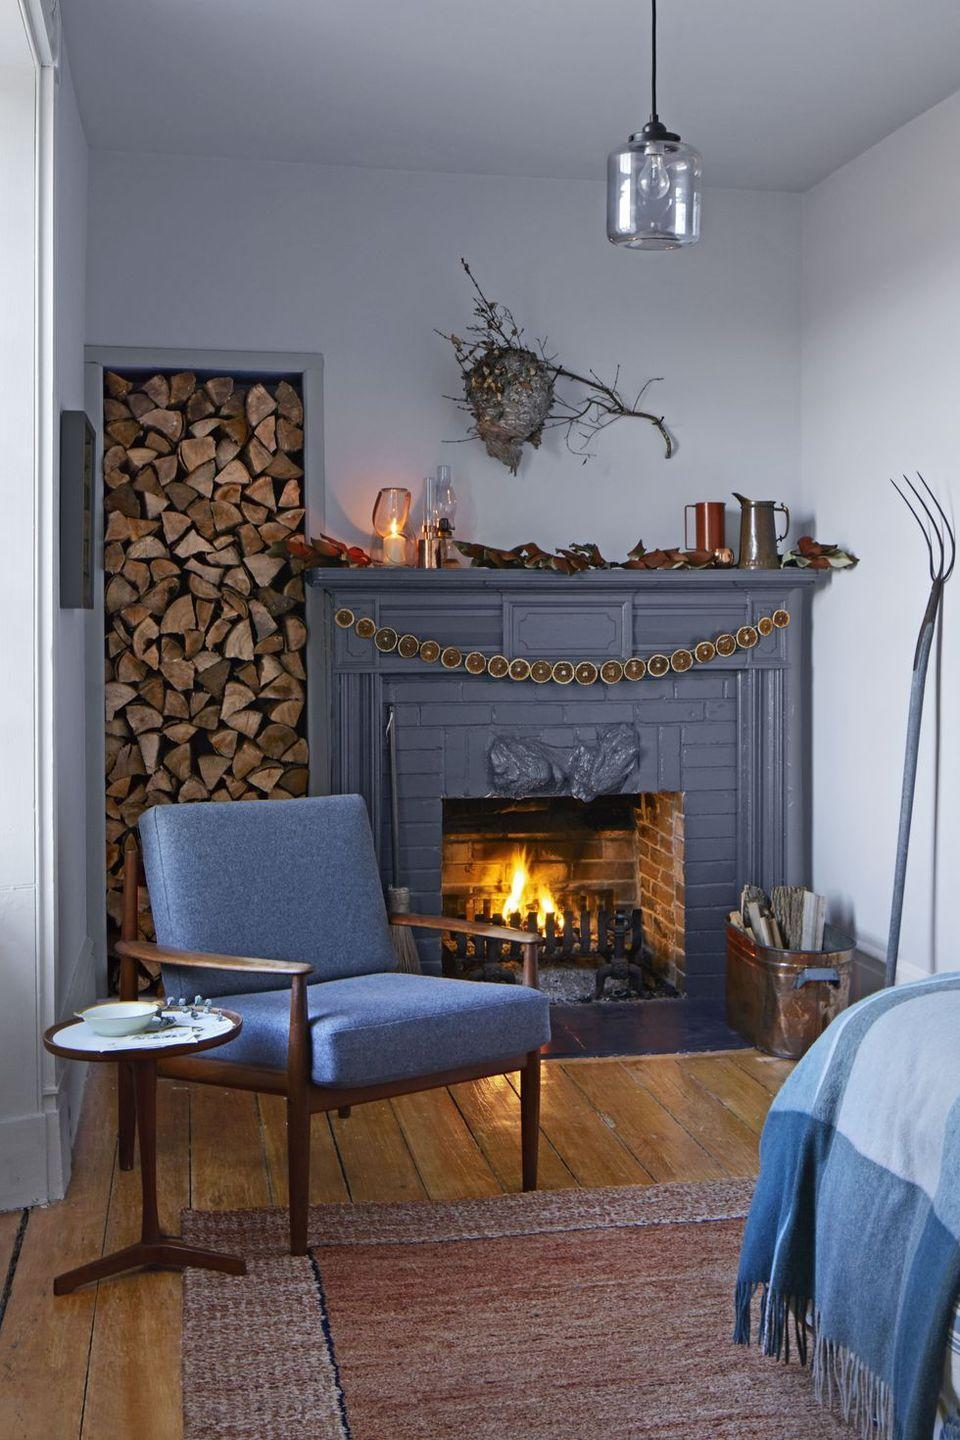 <p>Upgrade your mantel in an instant by pairing candles with branches and dried oranges.</p>